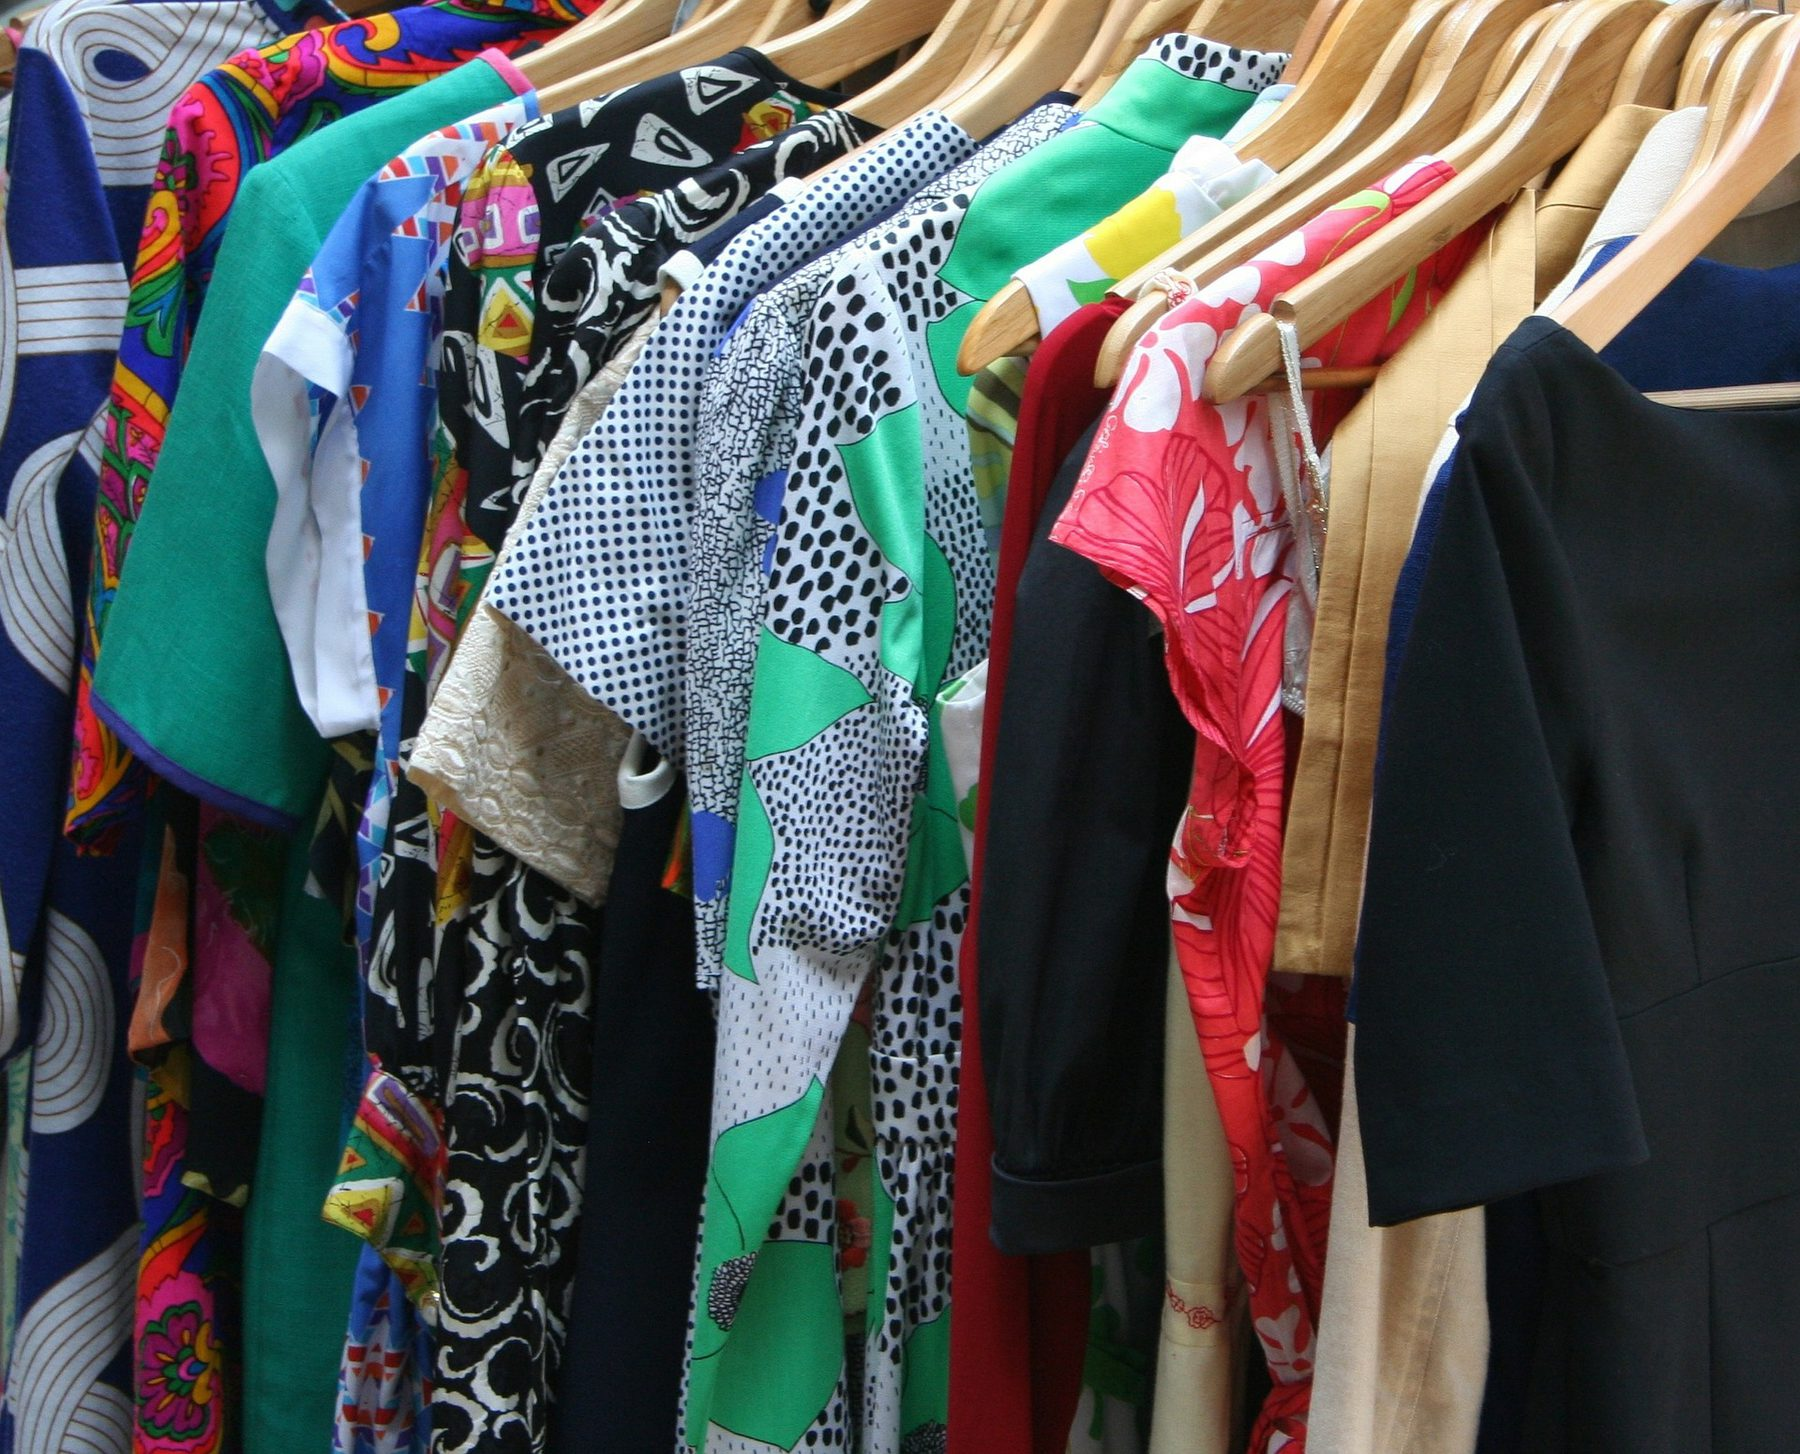 Job Role Image (Wardrobe Assistant: Clothes on Hangers)